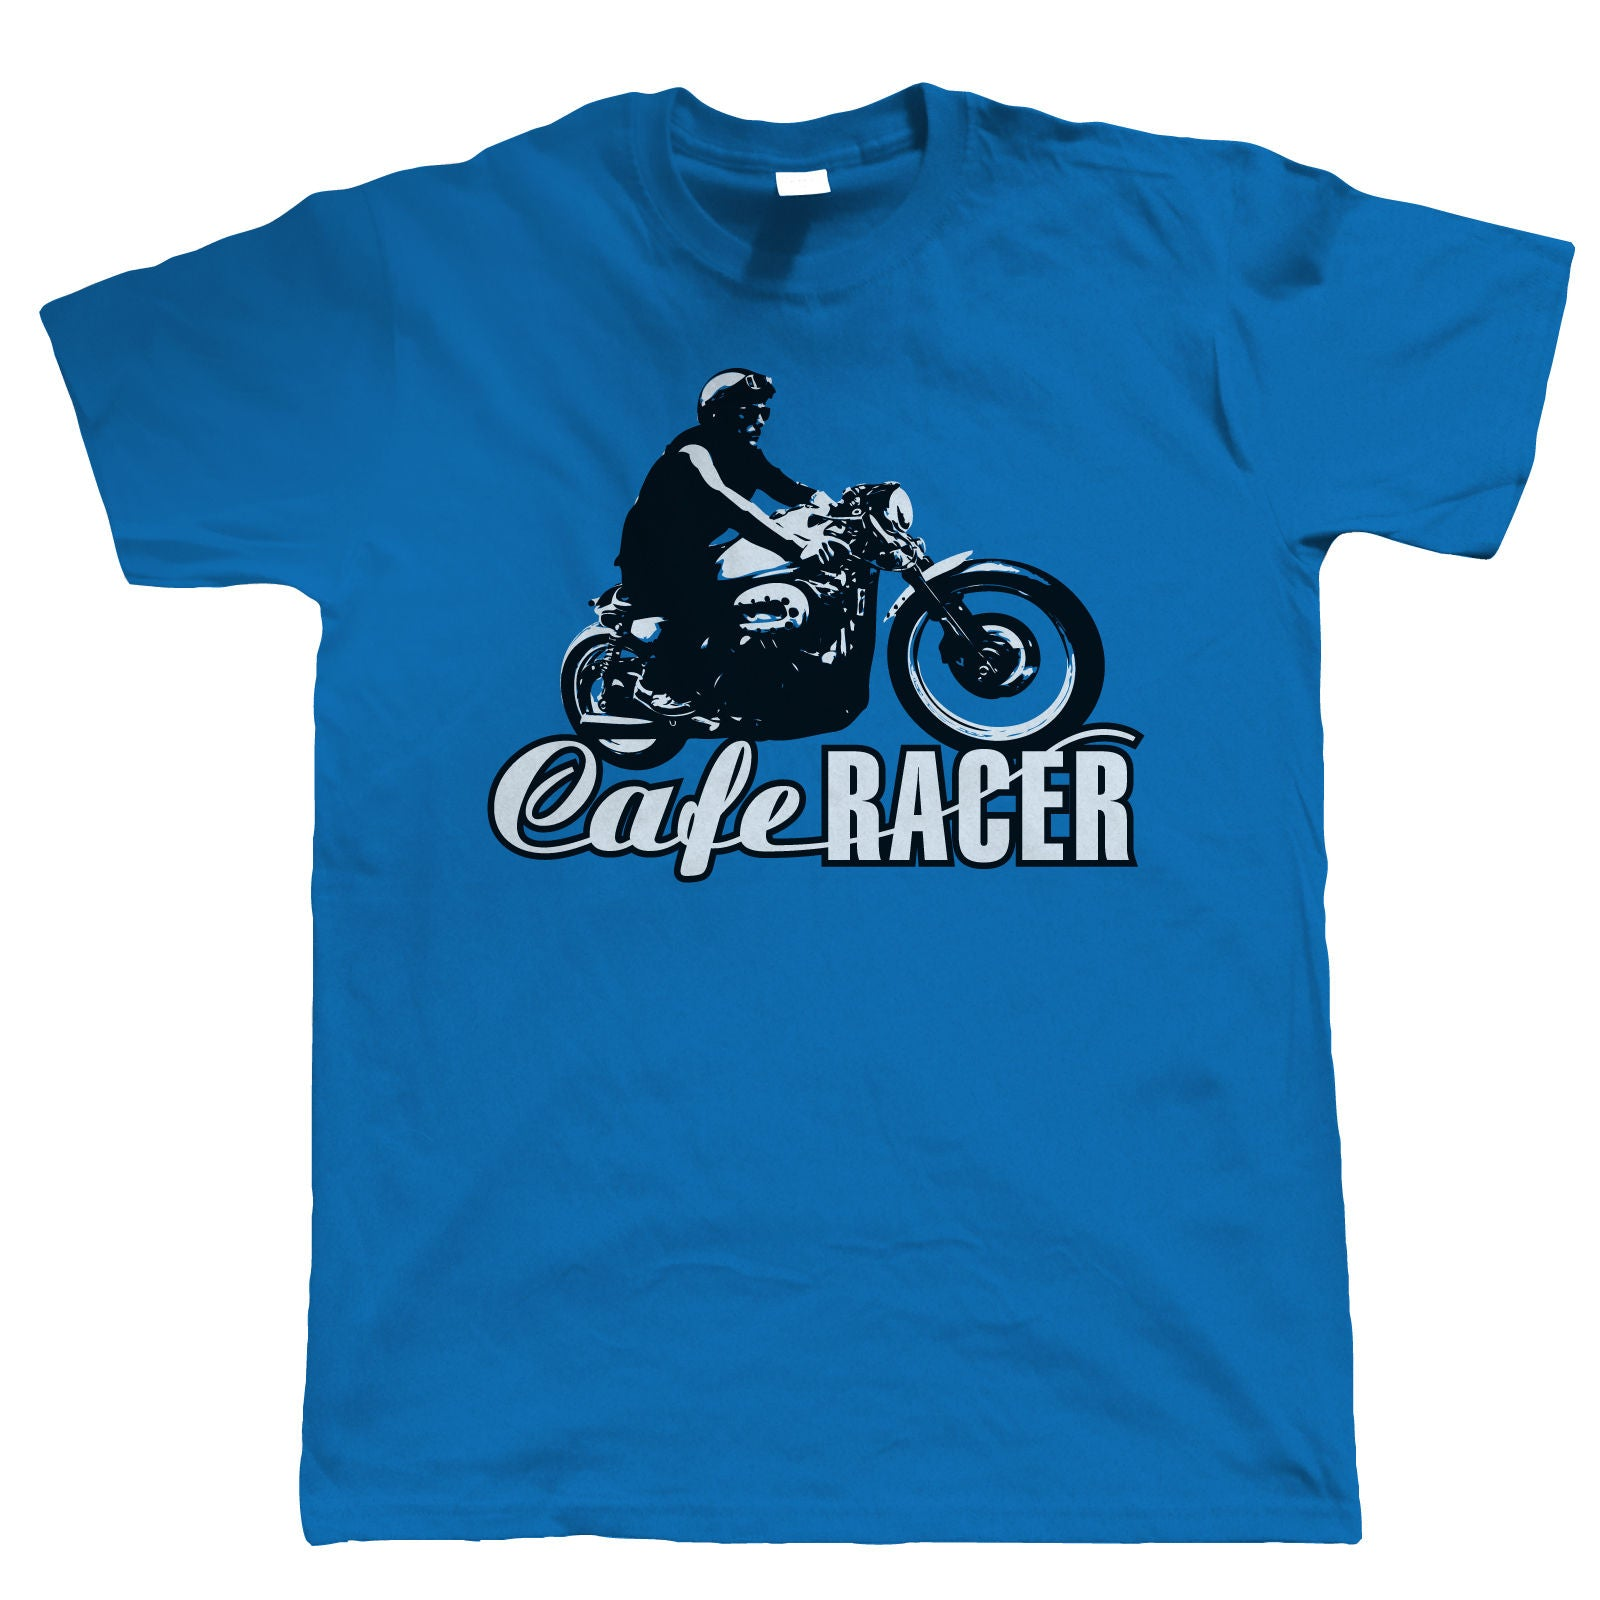 Cafe Racer Mens Vintage Biker T Shirt | Motorbike Racing Enthusiast 50's 60's British Motorcycle Club Chopper Cafe Racer Superbike Gentleman Biker | Cool Birthday Christmas Gift Him Dad Husband Son